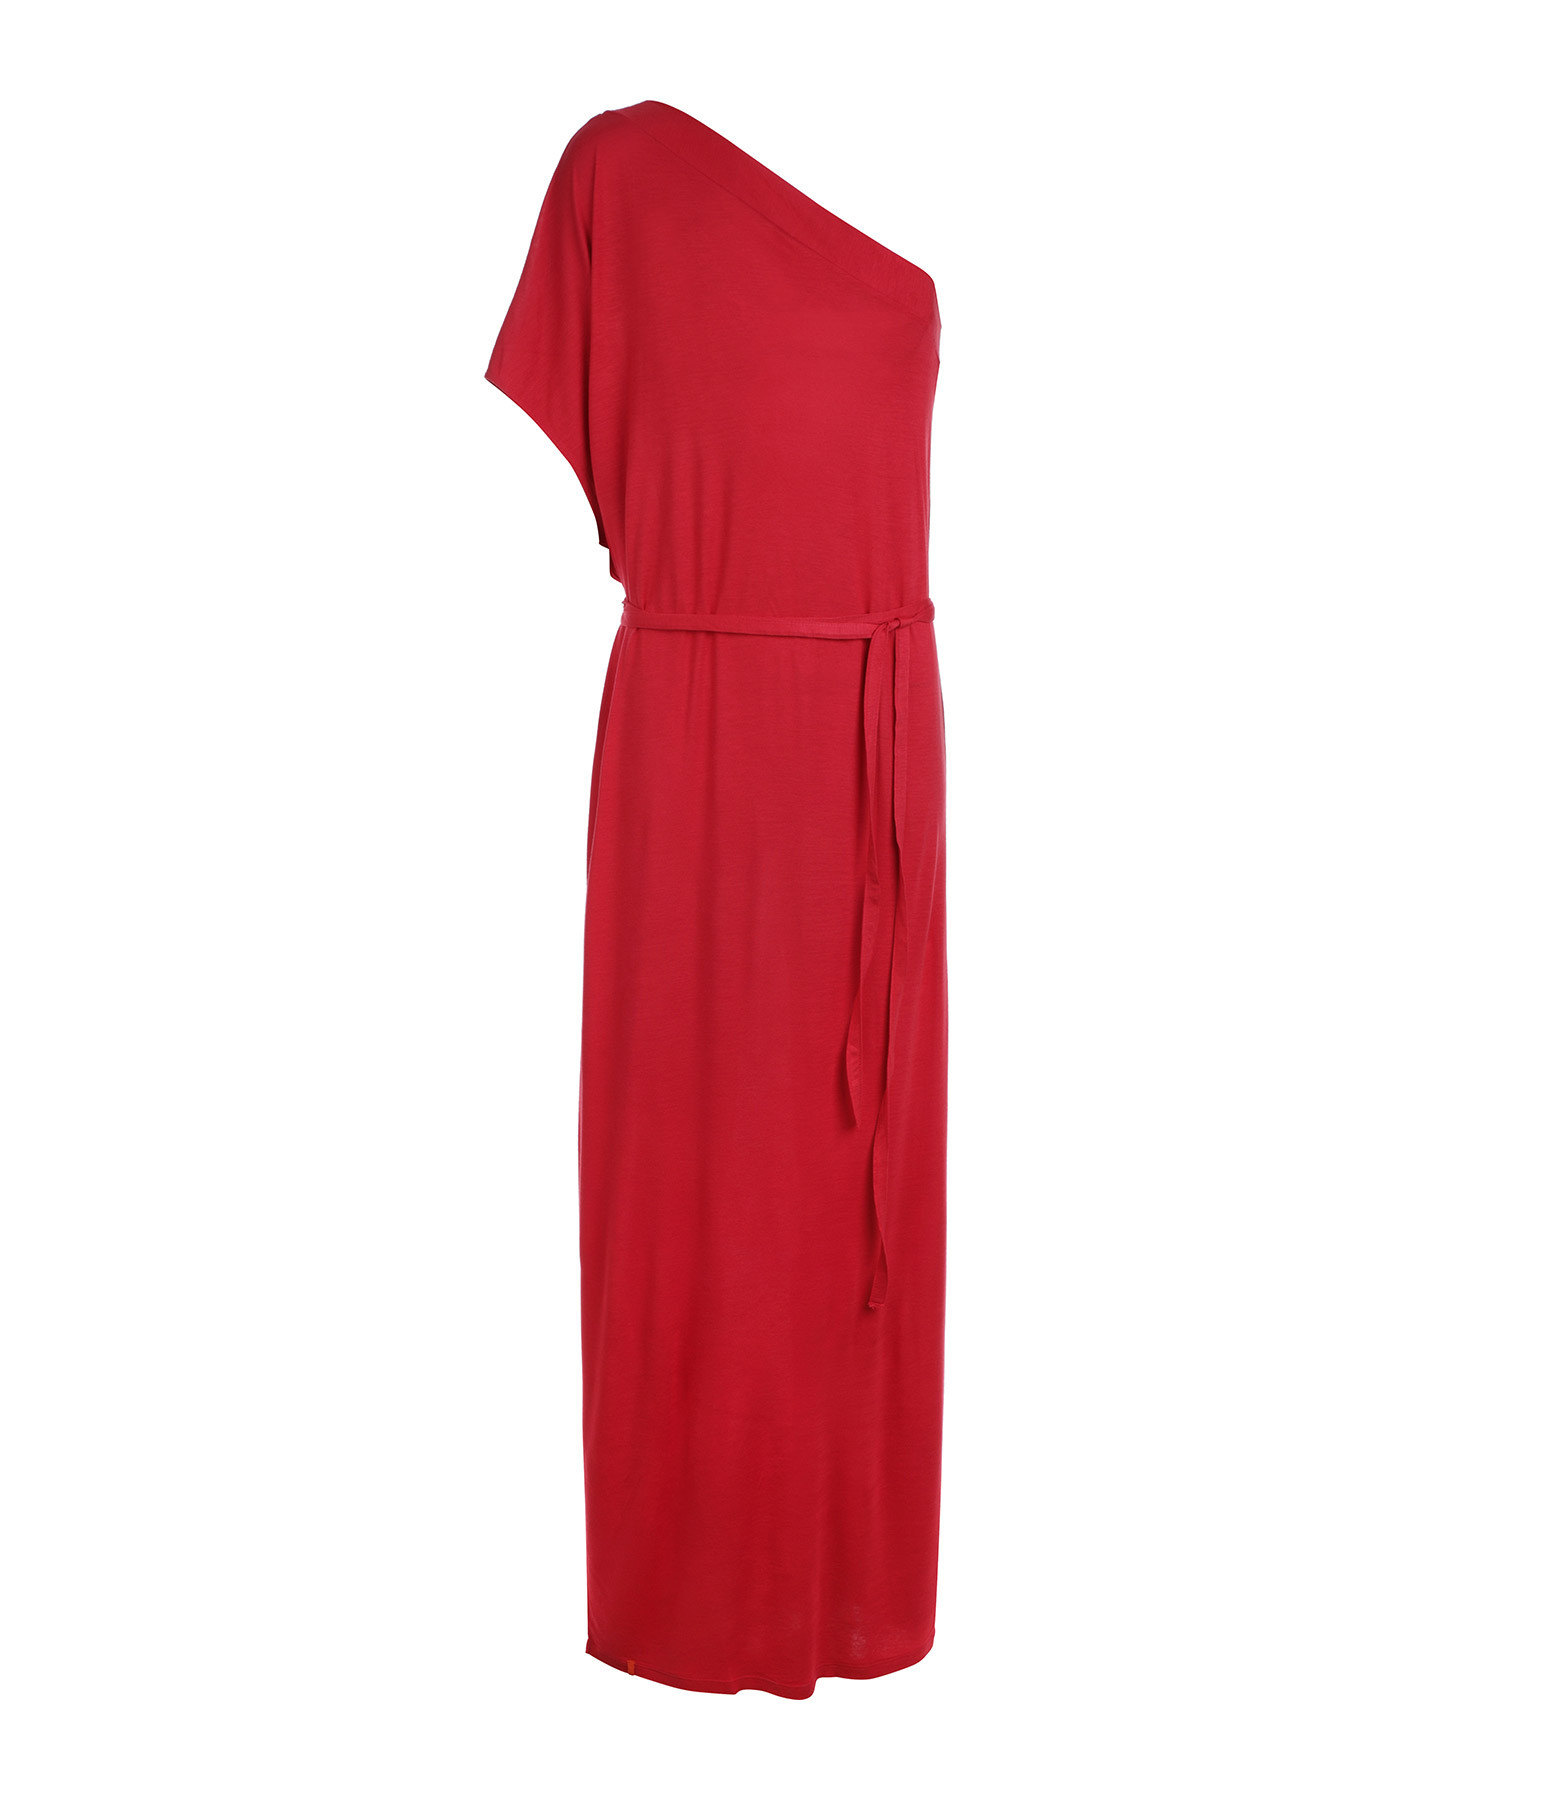 MAEVY - Robe Laura Bambou Rouge